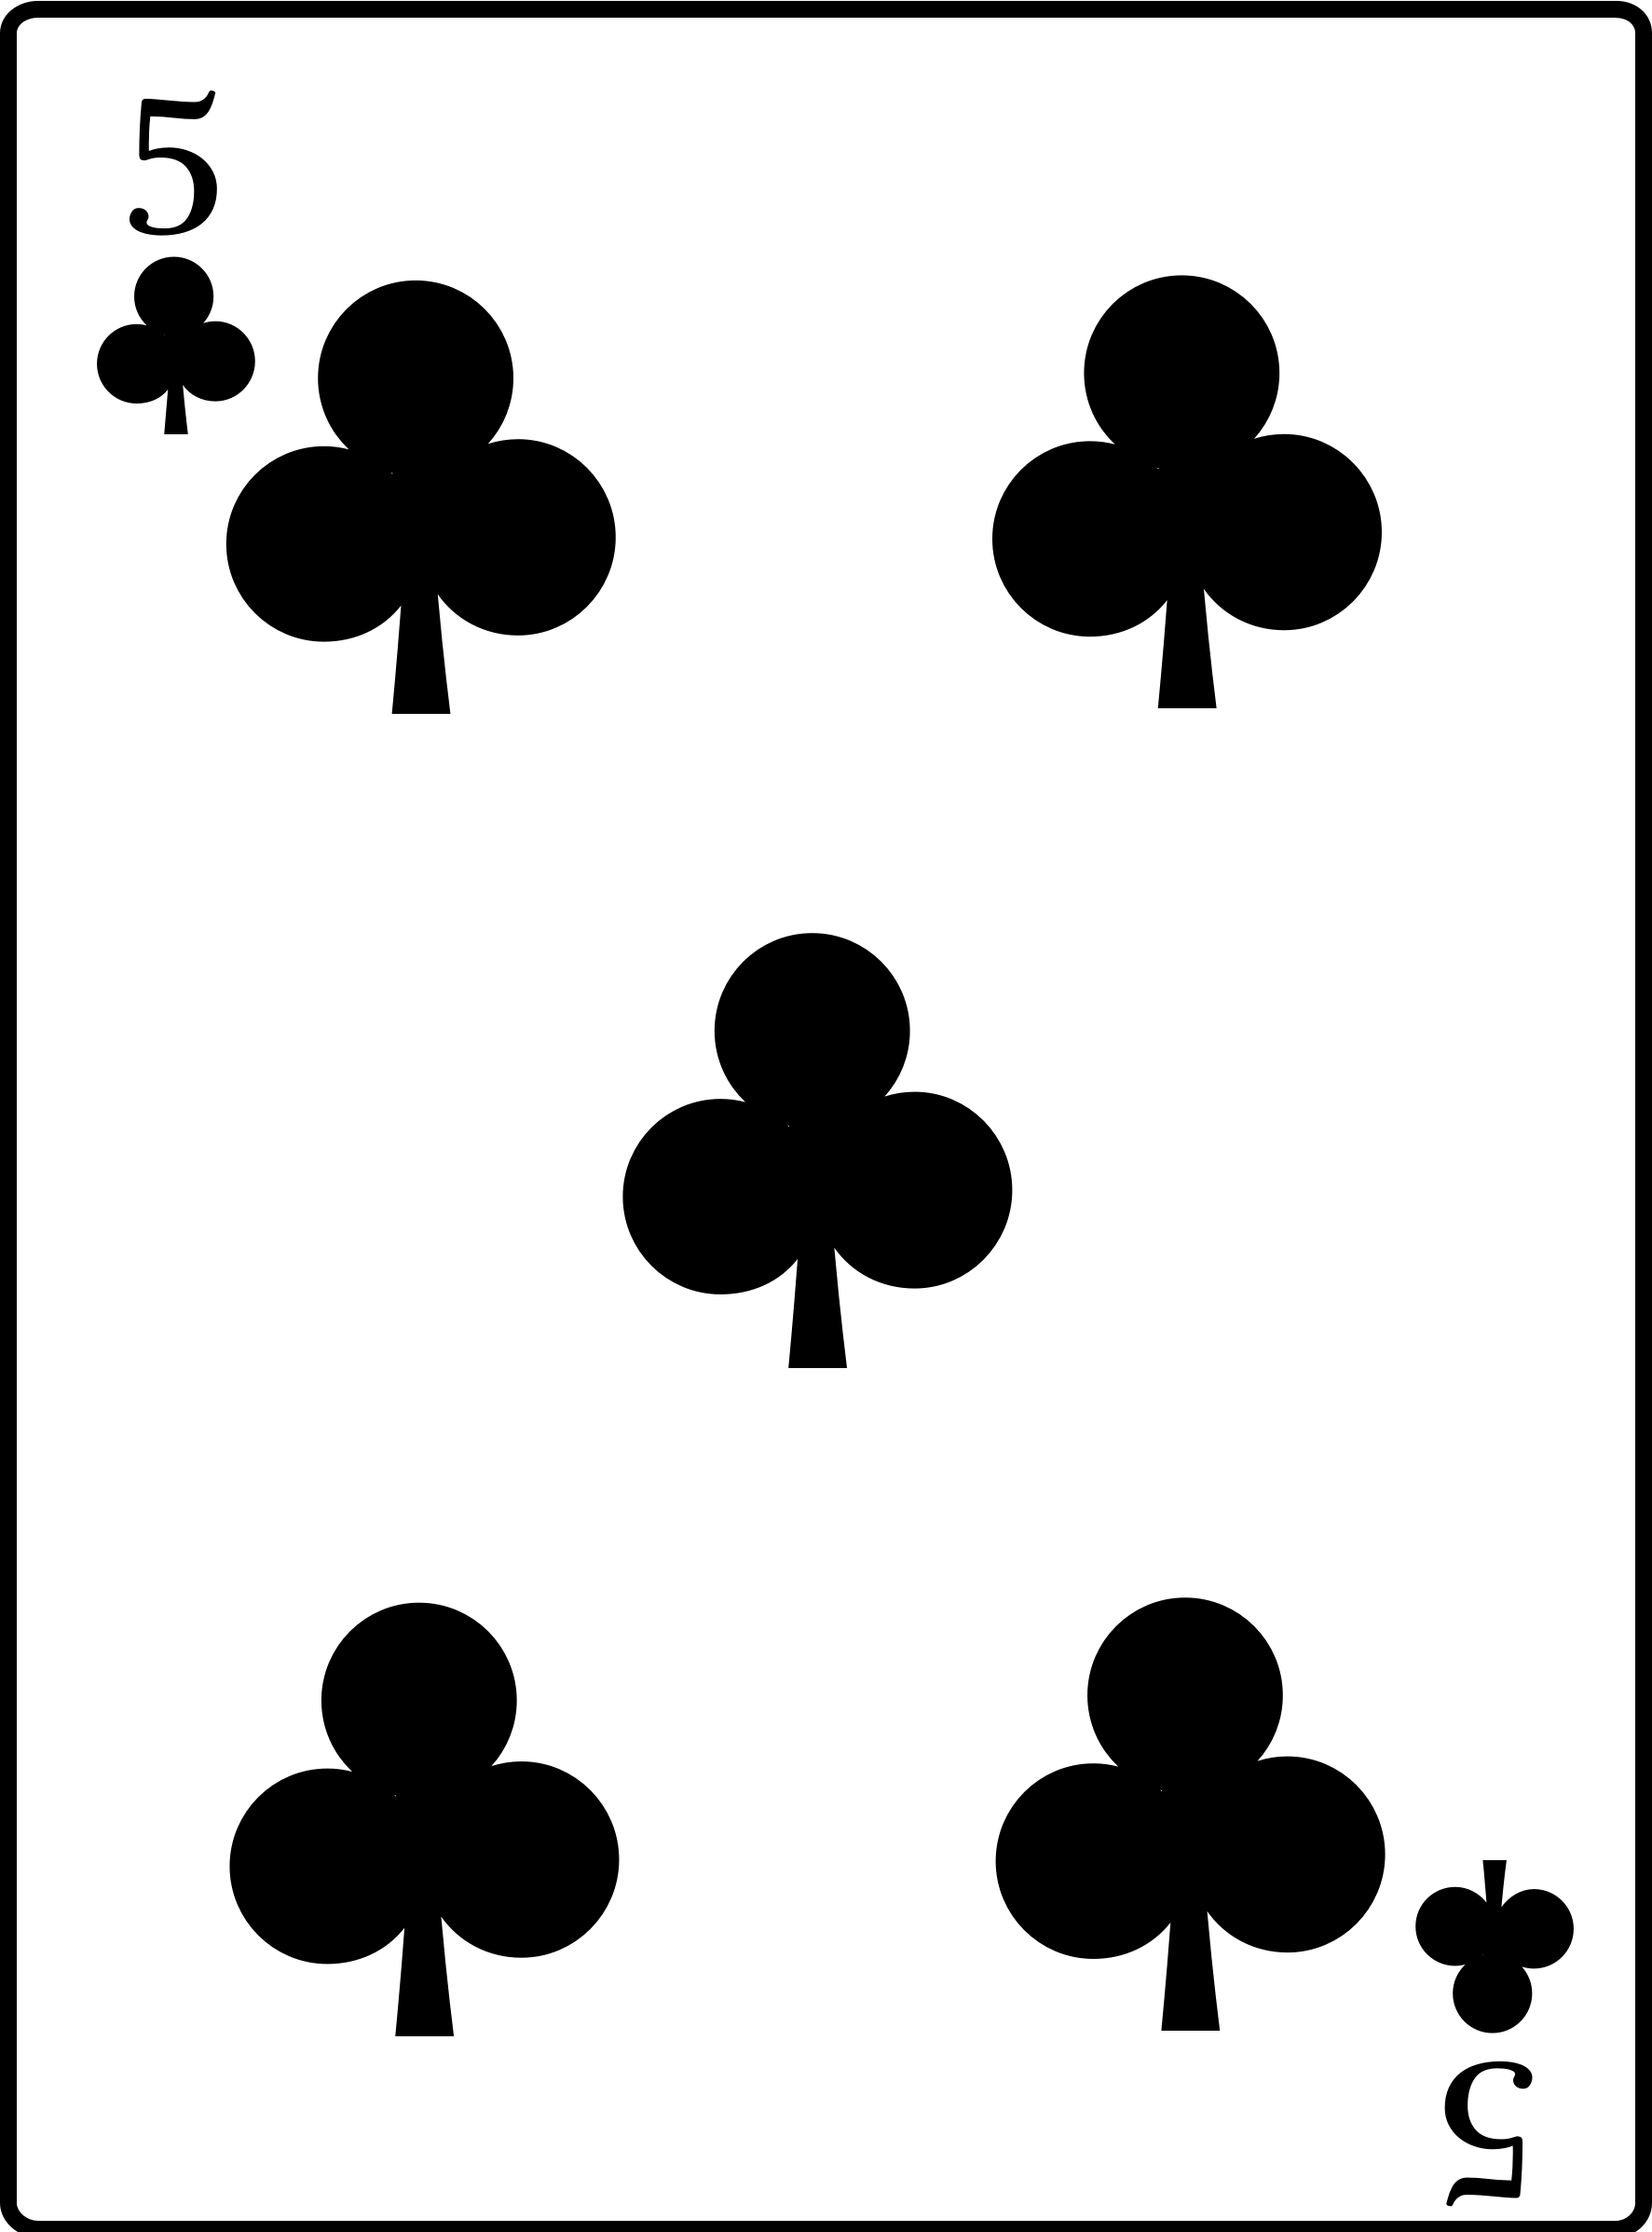 5 of Clubs by casino